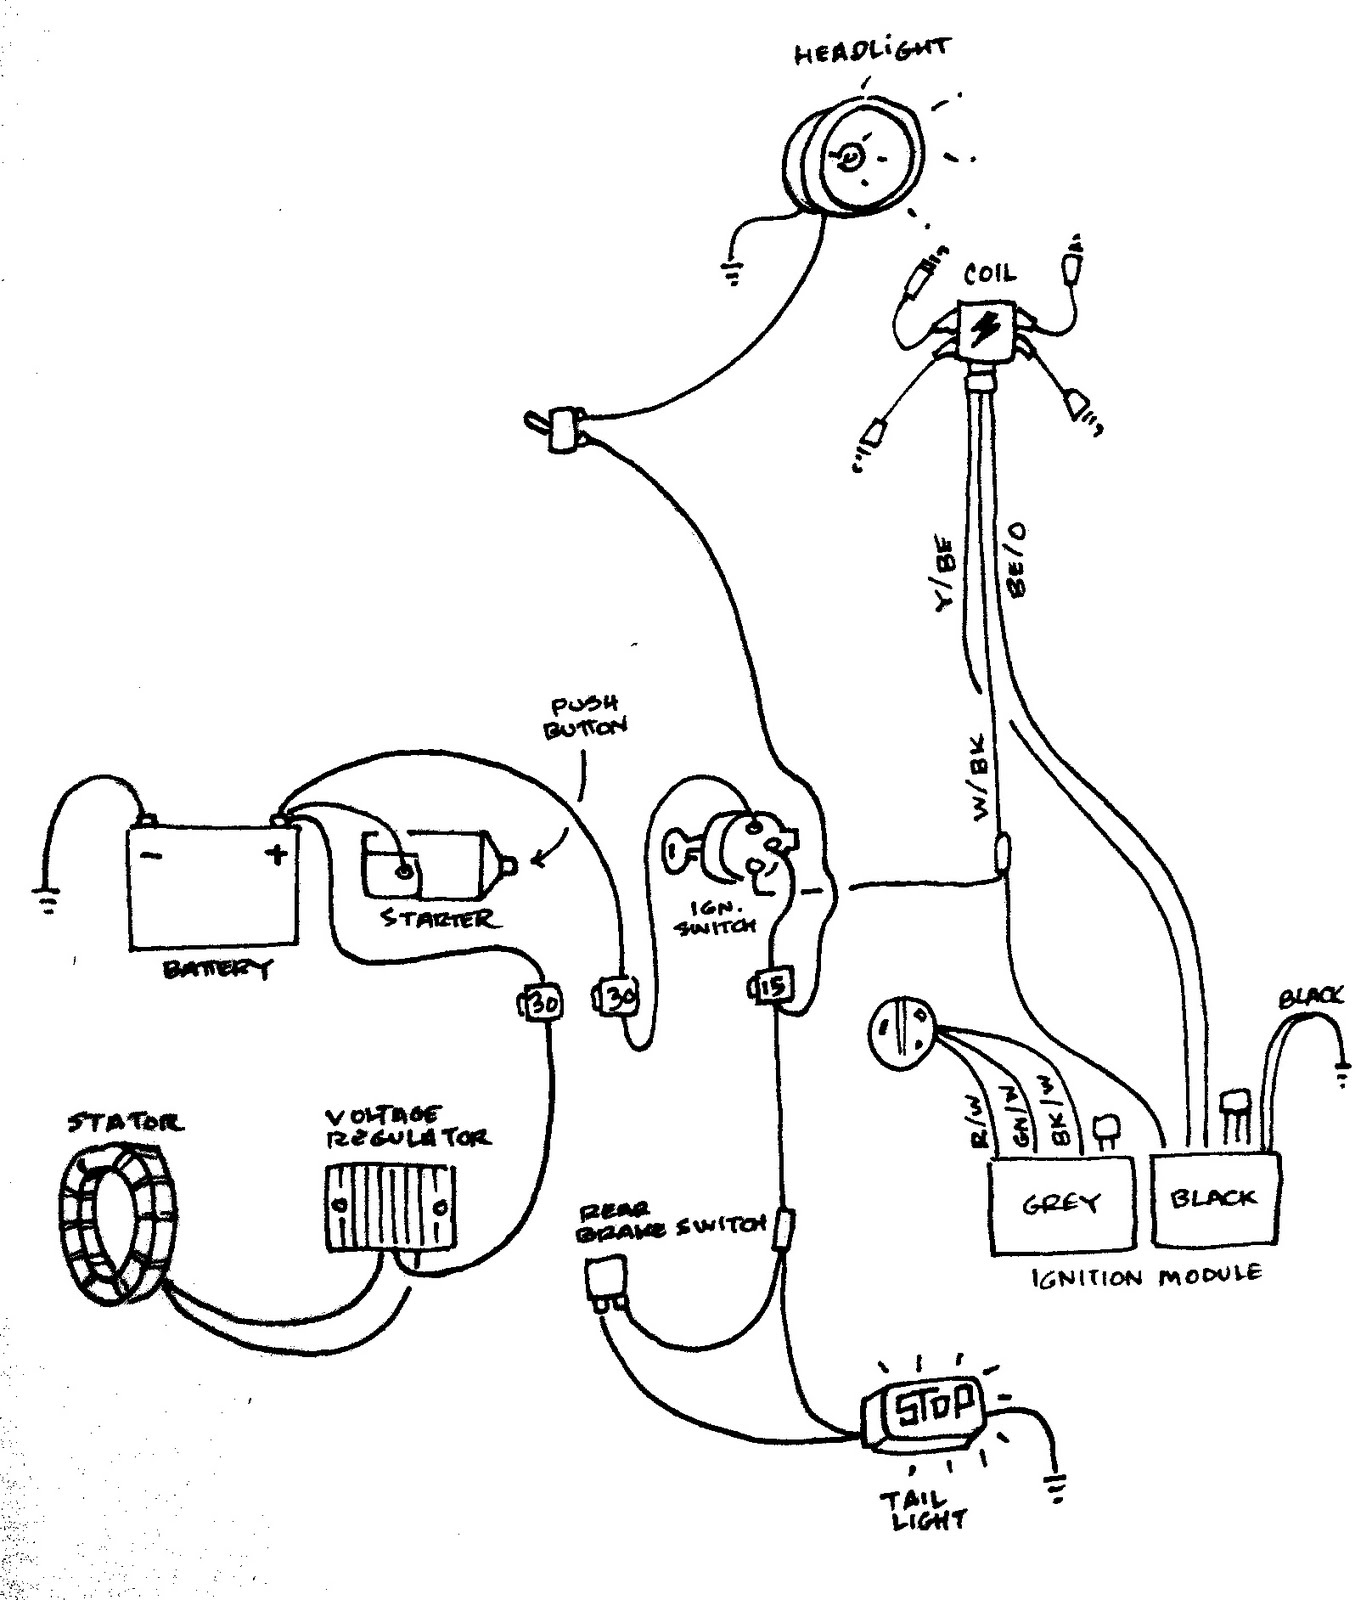 yamaha scooter ignition wiring diagram best wiring library Gravely Wiring Diagrams 49cc mini chopper wiring diagram fe wiring diagrams 49cc fuel pump hose diagram 49cc scooter ignition